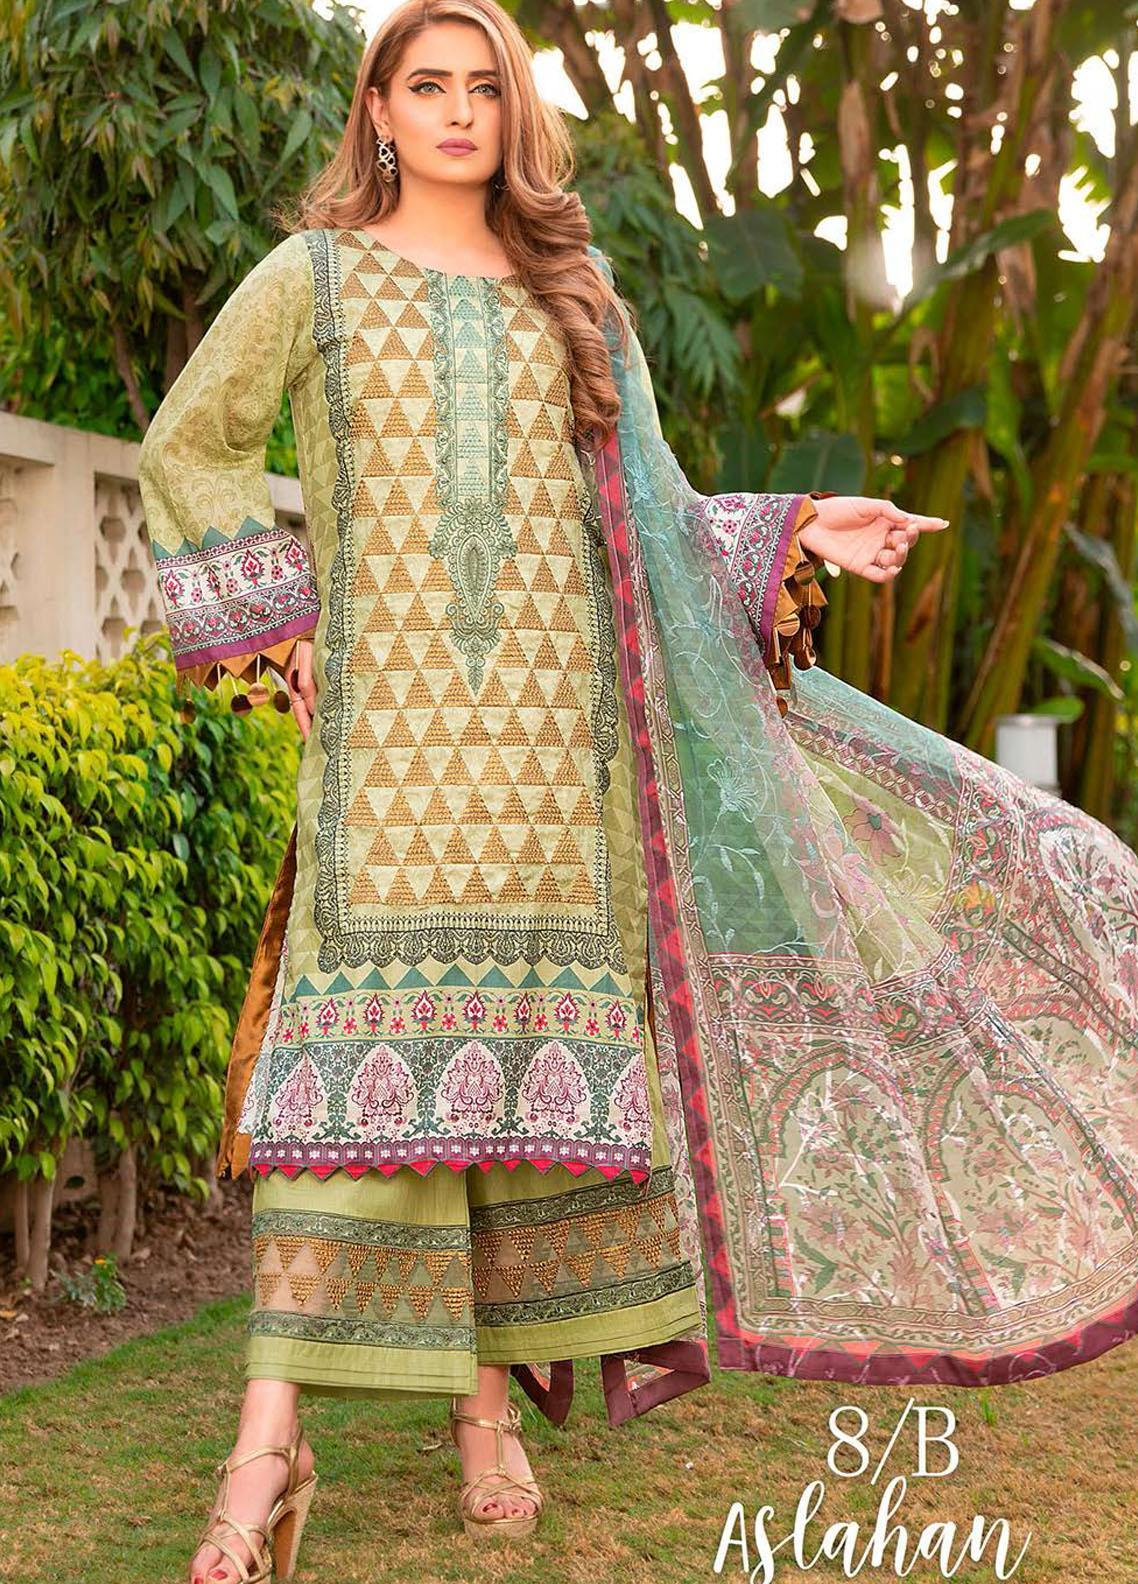 Libaas Embroidered Lawn Suits Unstitched 3 Piece LB21E 8B Aslahan - Eid Collection